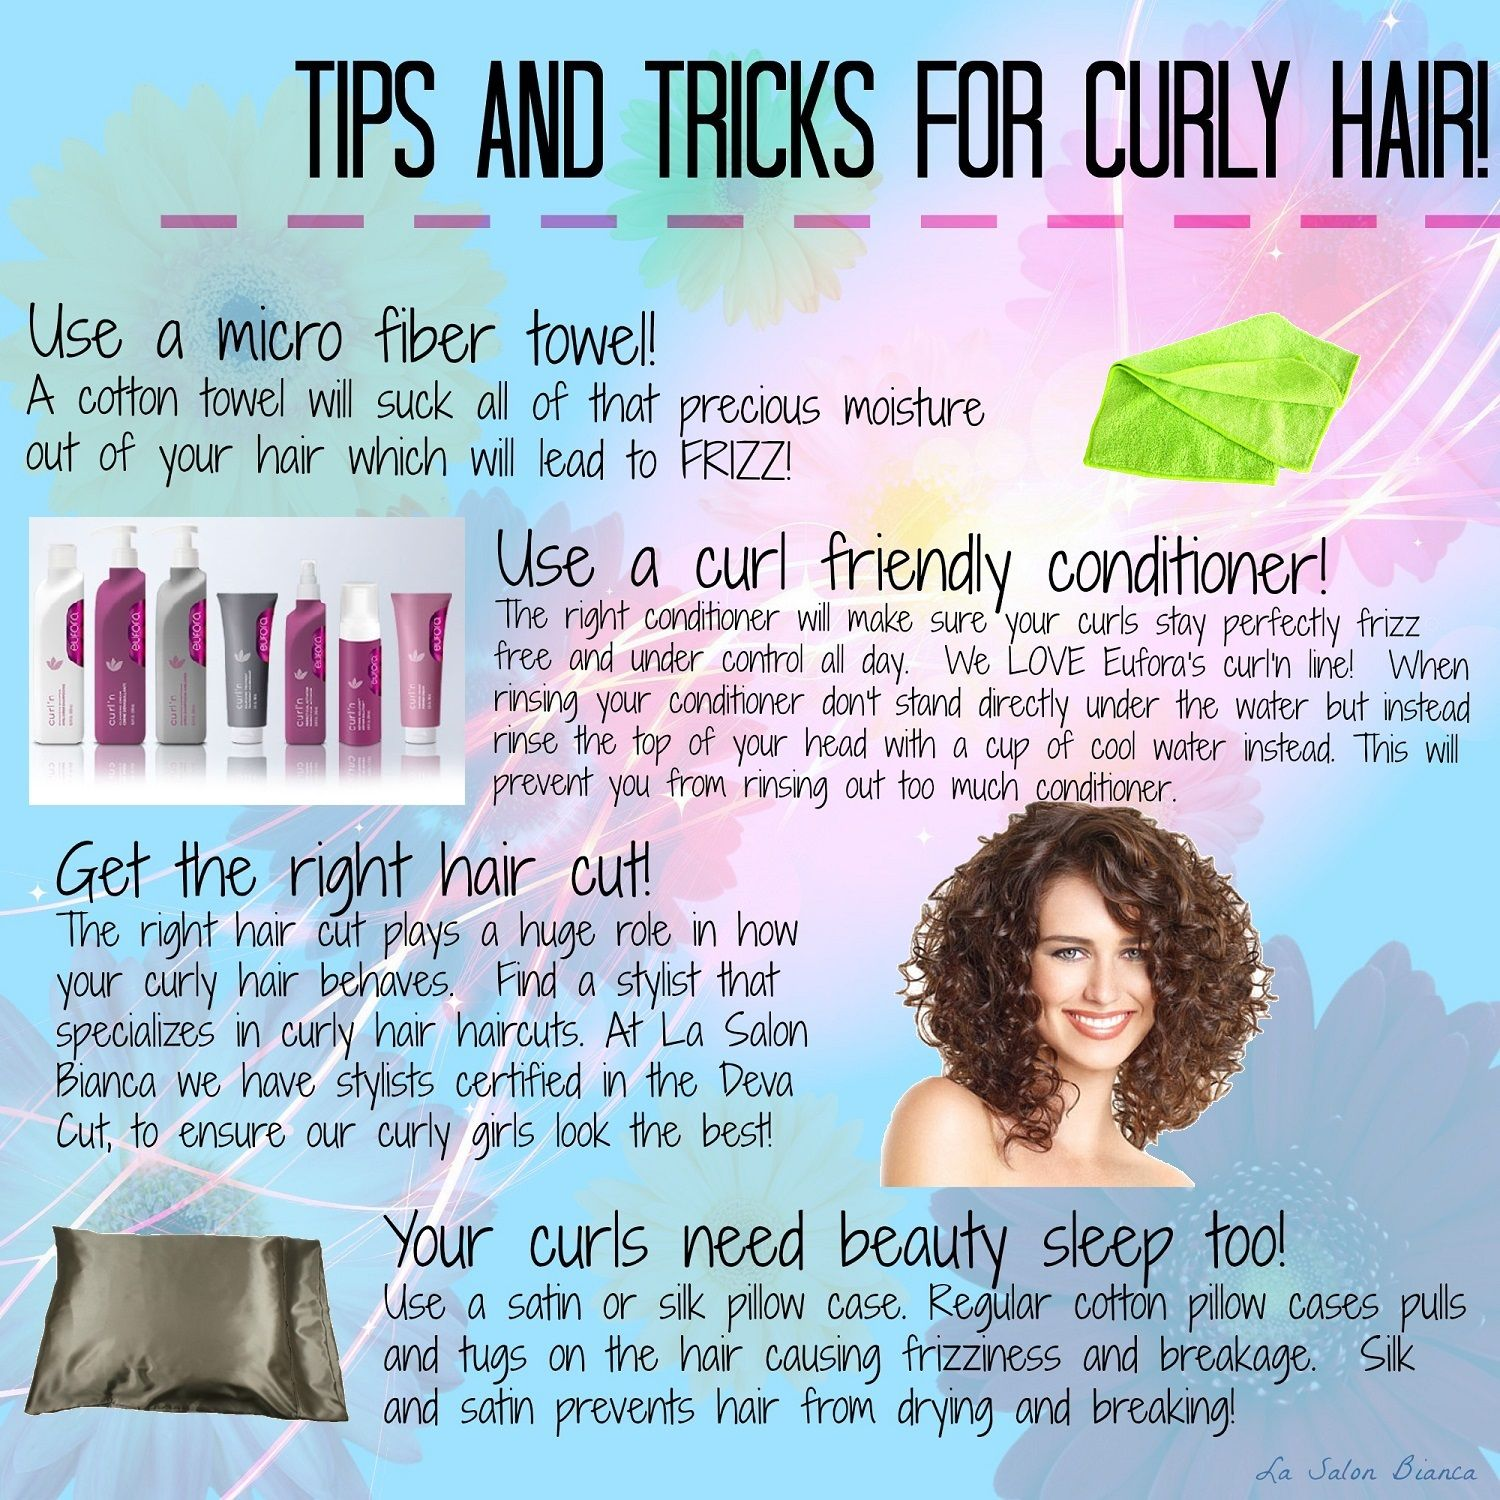 Best Hair Care Tips For Curly Hair What Do You Have To Do With